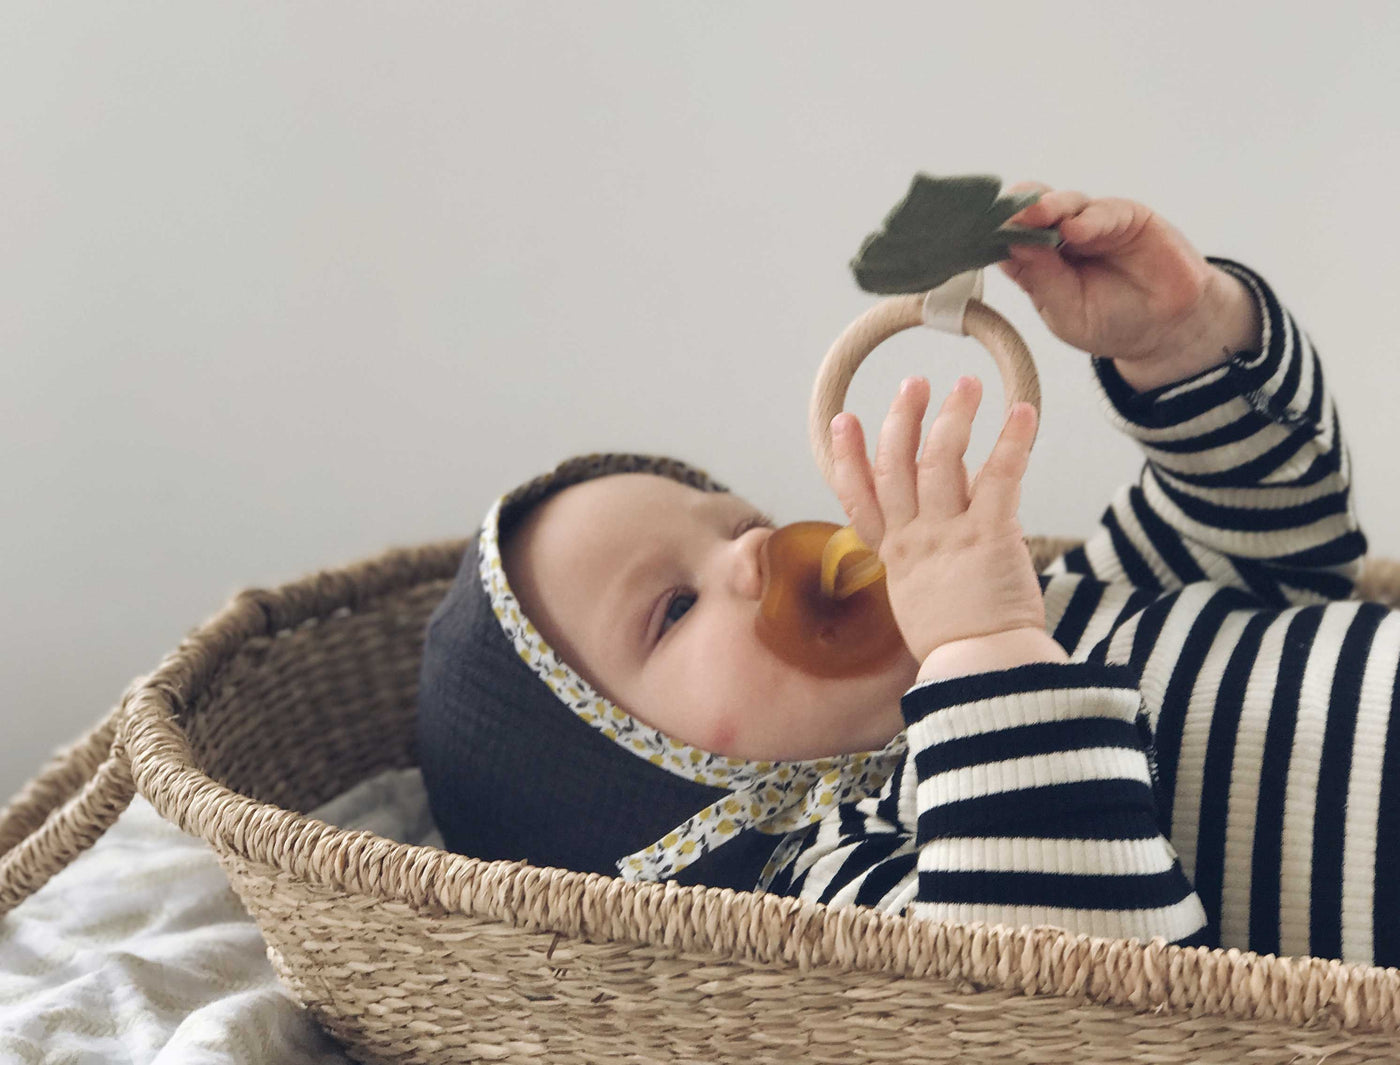 baby lying in a moses basket clutching a wooden teether